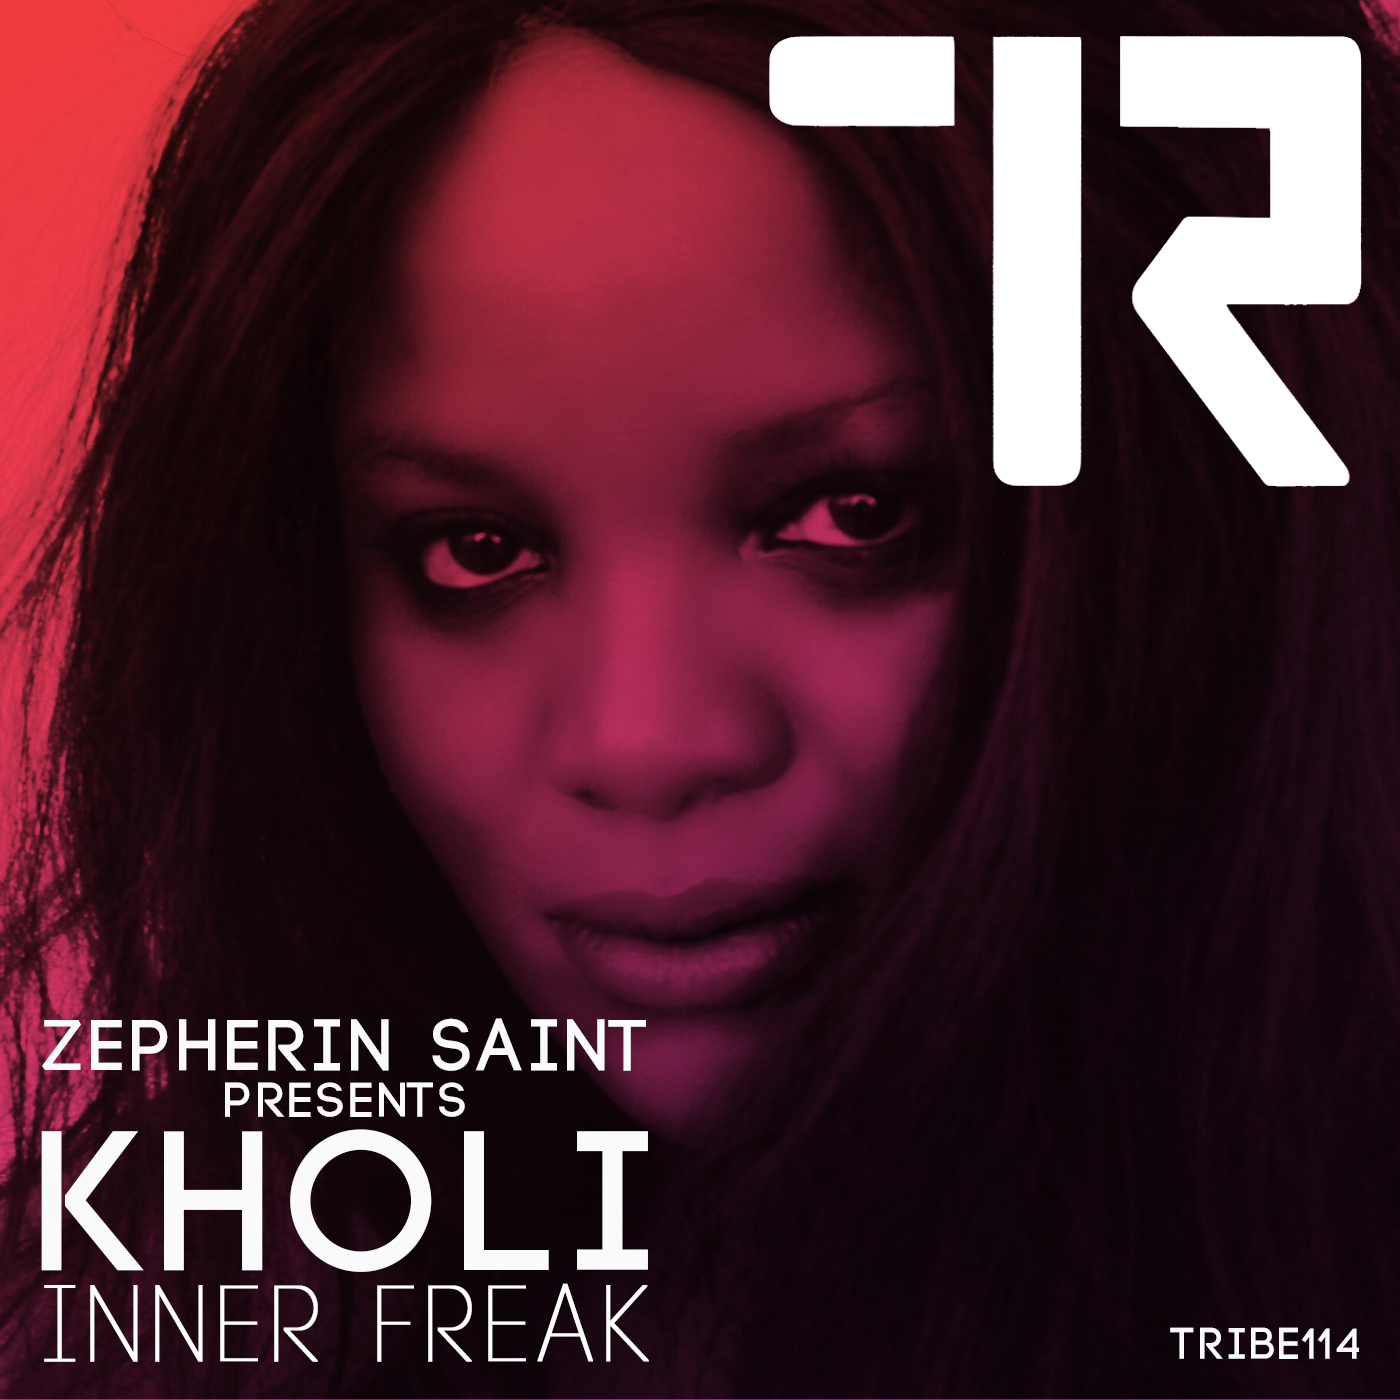 INNER FREAK  Zepherin Saint KHOLI